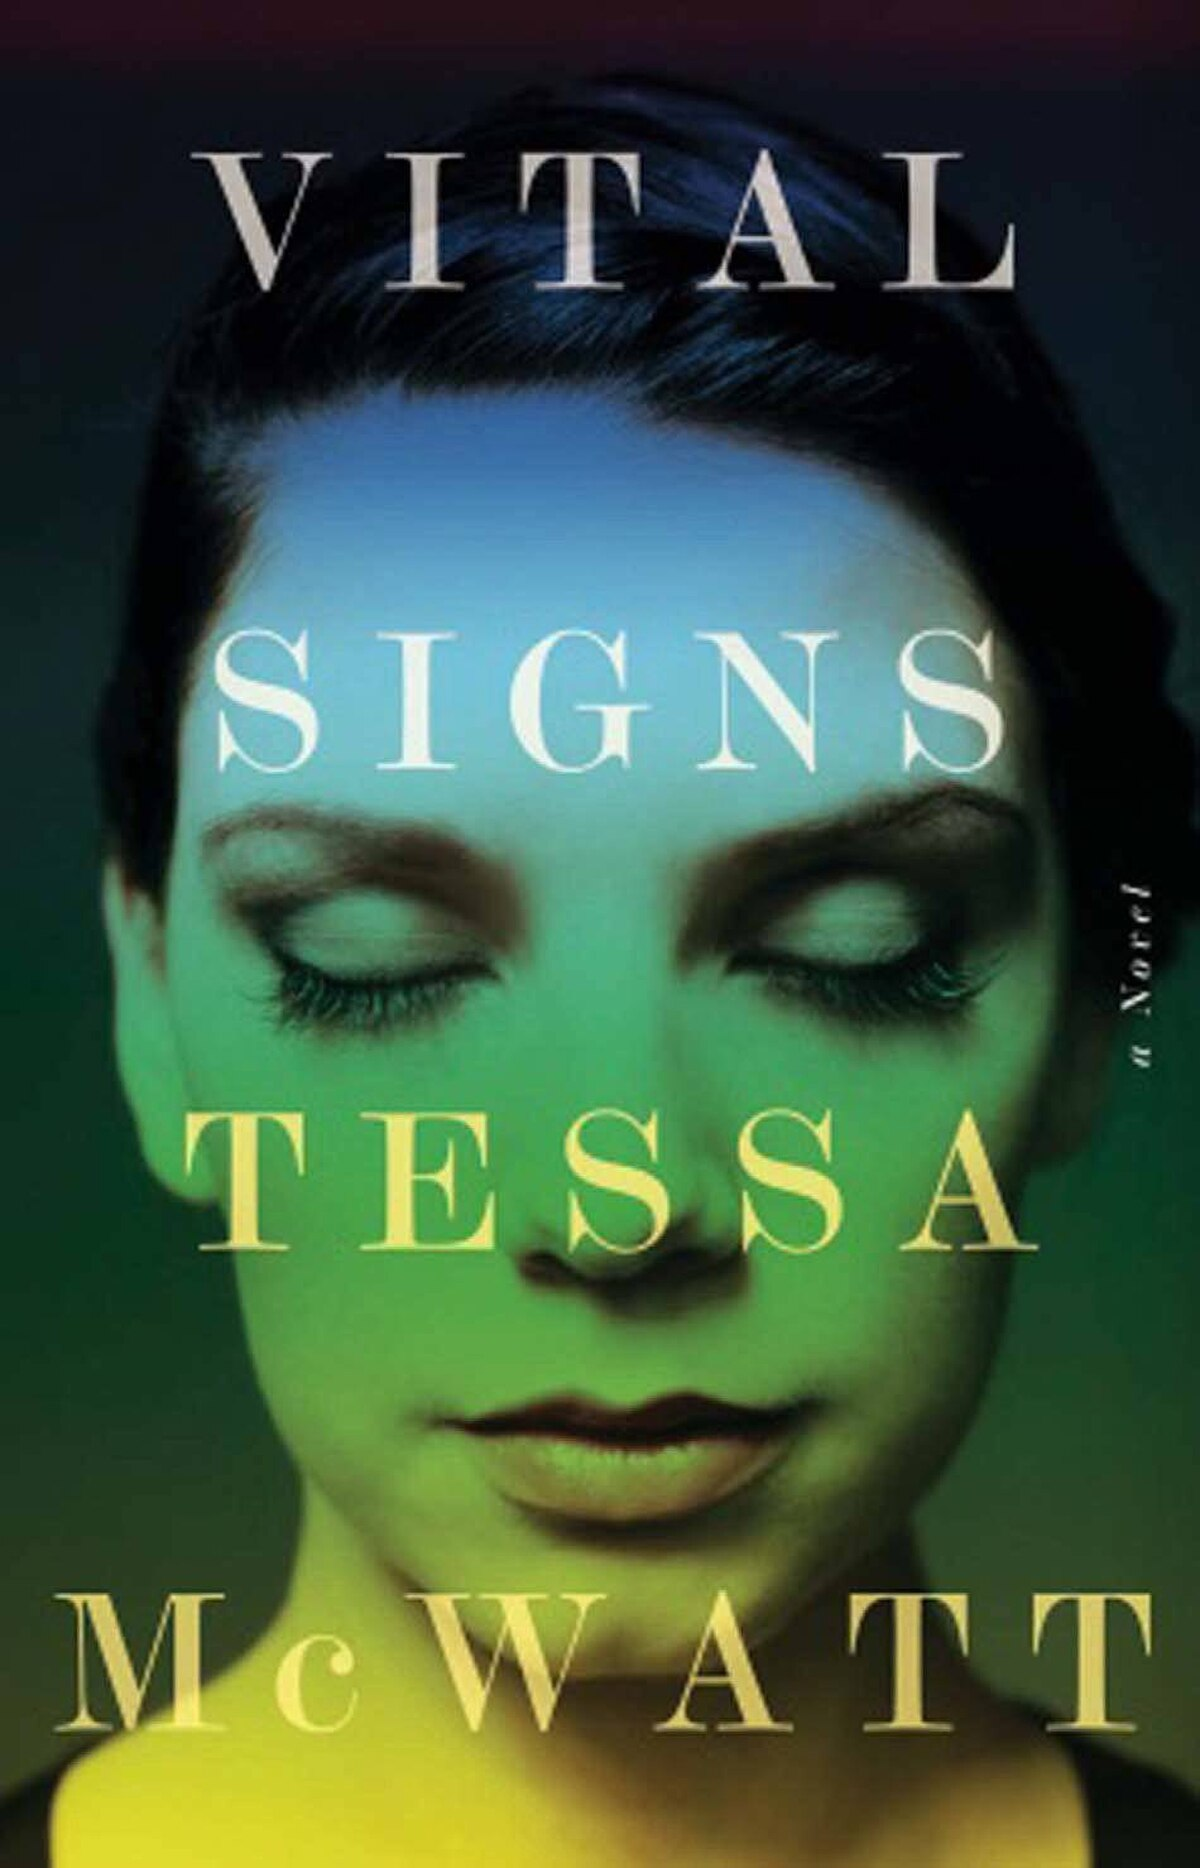 """VITAL SIGNS By Tessa McWatt (Random House Canada) McWatt's bracing slap of a novel makes long-term couplehood more puzzling, murky and indefinable than ever. After 30 years of marriage, Michael and Anna must contend with Anna's brain aneurysm and the prospect of a life-threatening operation. Over this book's eerie traverse, Michael comes to question everything he has ever thought about """"normal"""" life. – Cynthia Macdonald"""